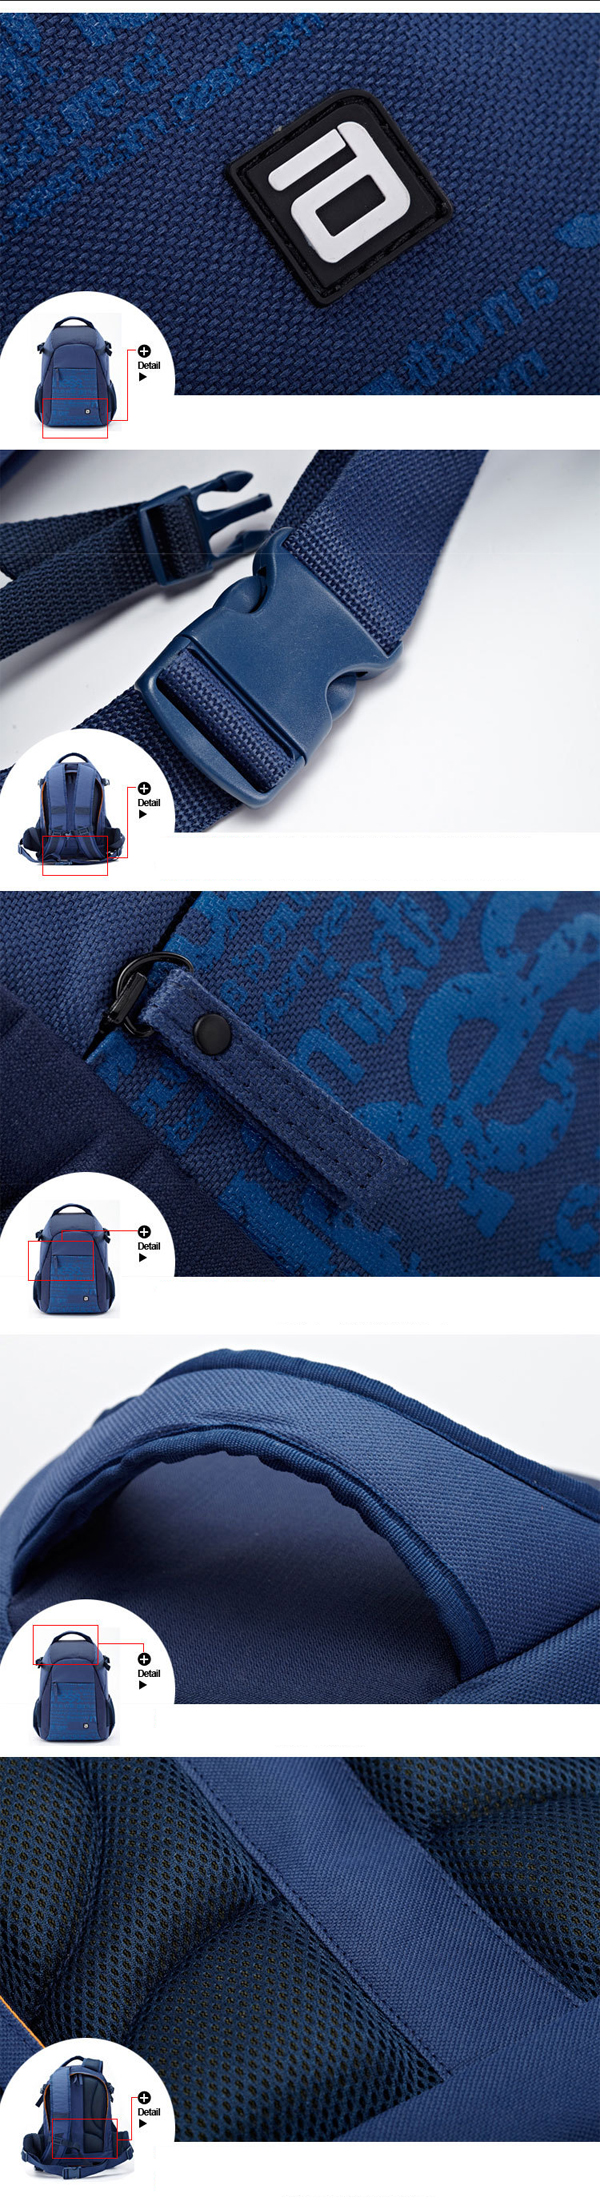 Camera Backpack Video Padded Backpack Camera Bag with Rain Cover for Nikon C anon